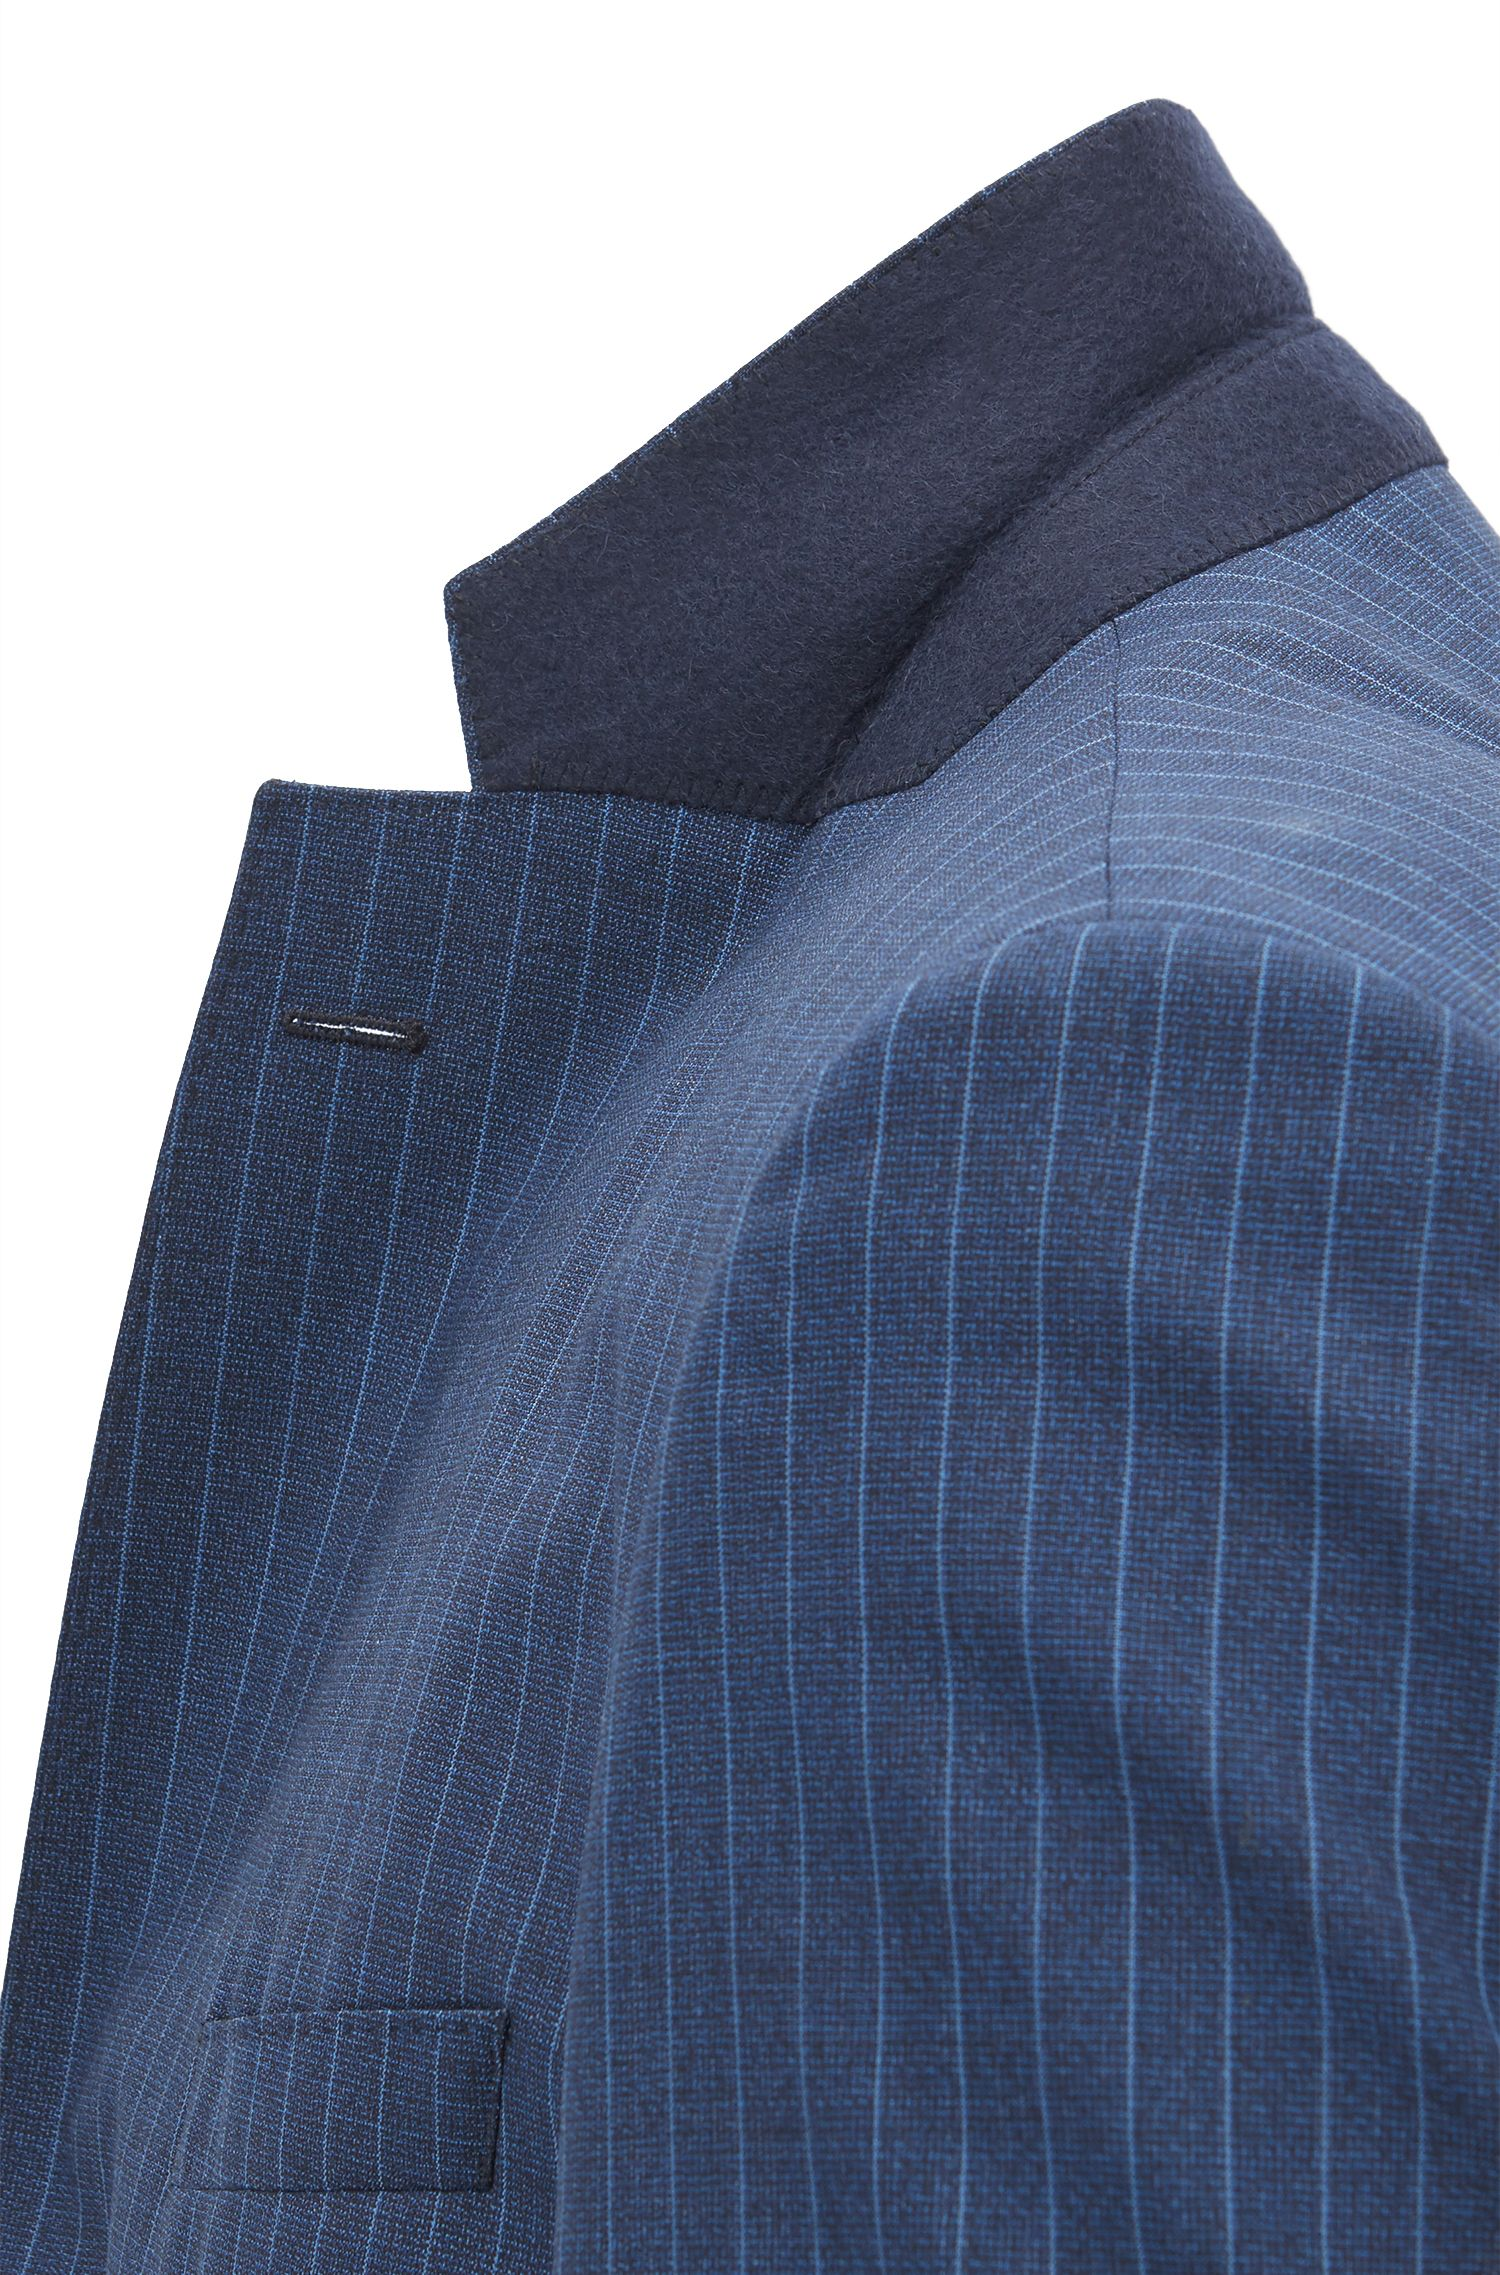 Regular-fit pinstripe suit in Italian virgin wool, Blue